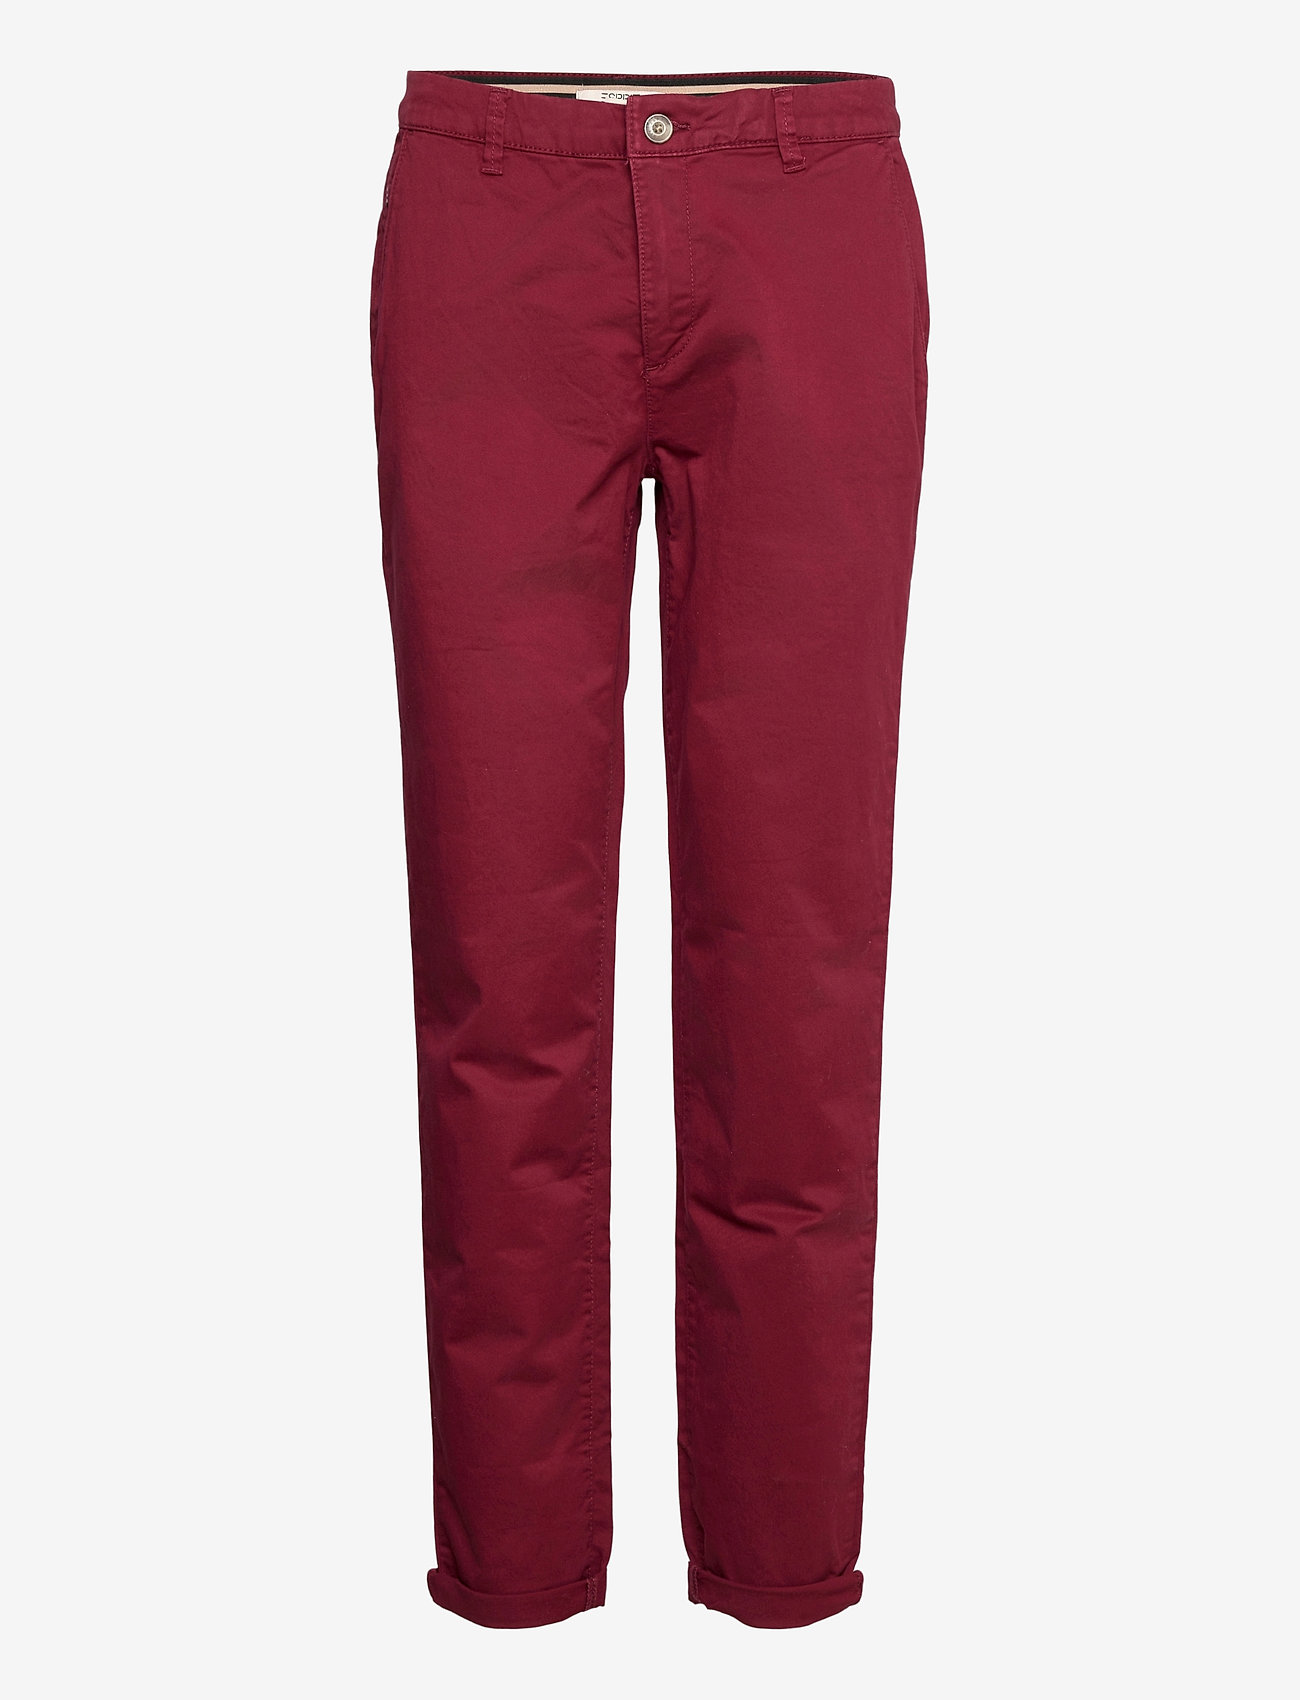 Esprit Casual - Pants woven - chinos - bordeaux red - 0